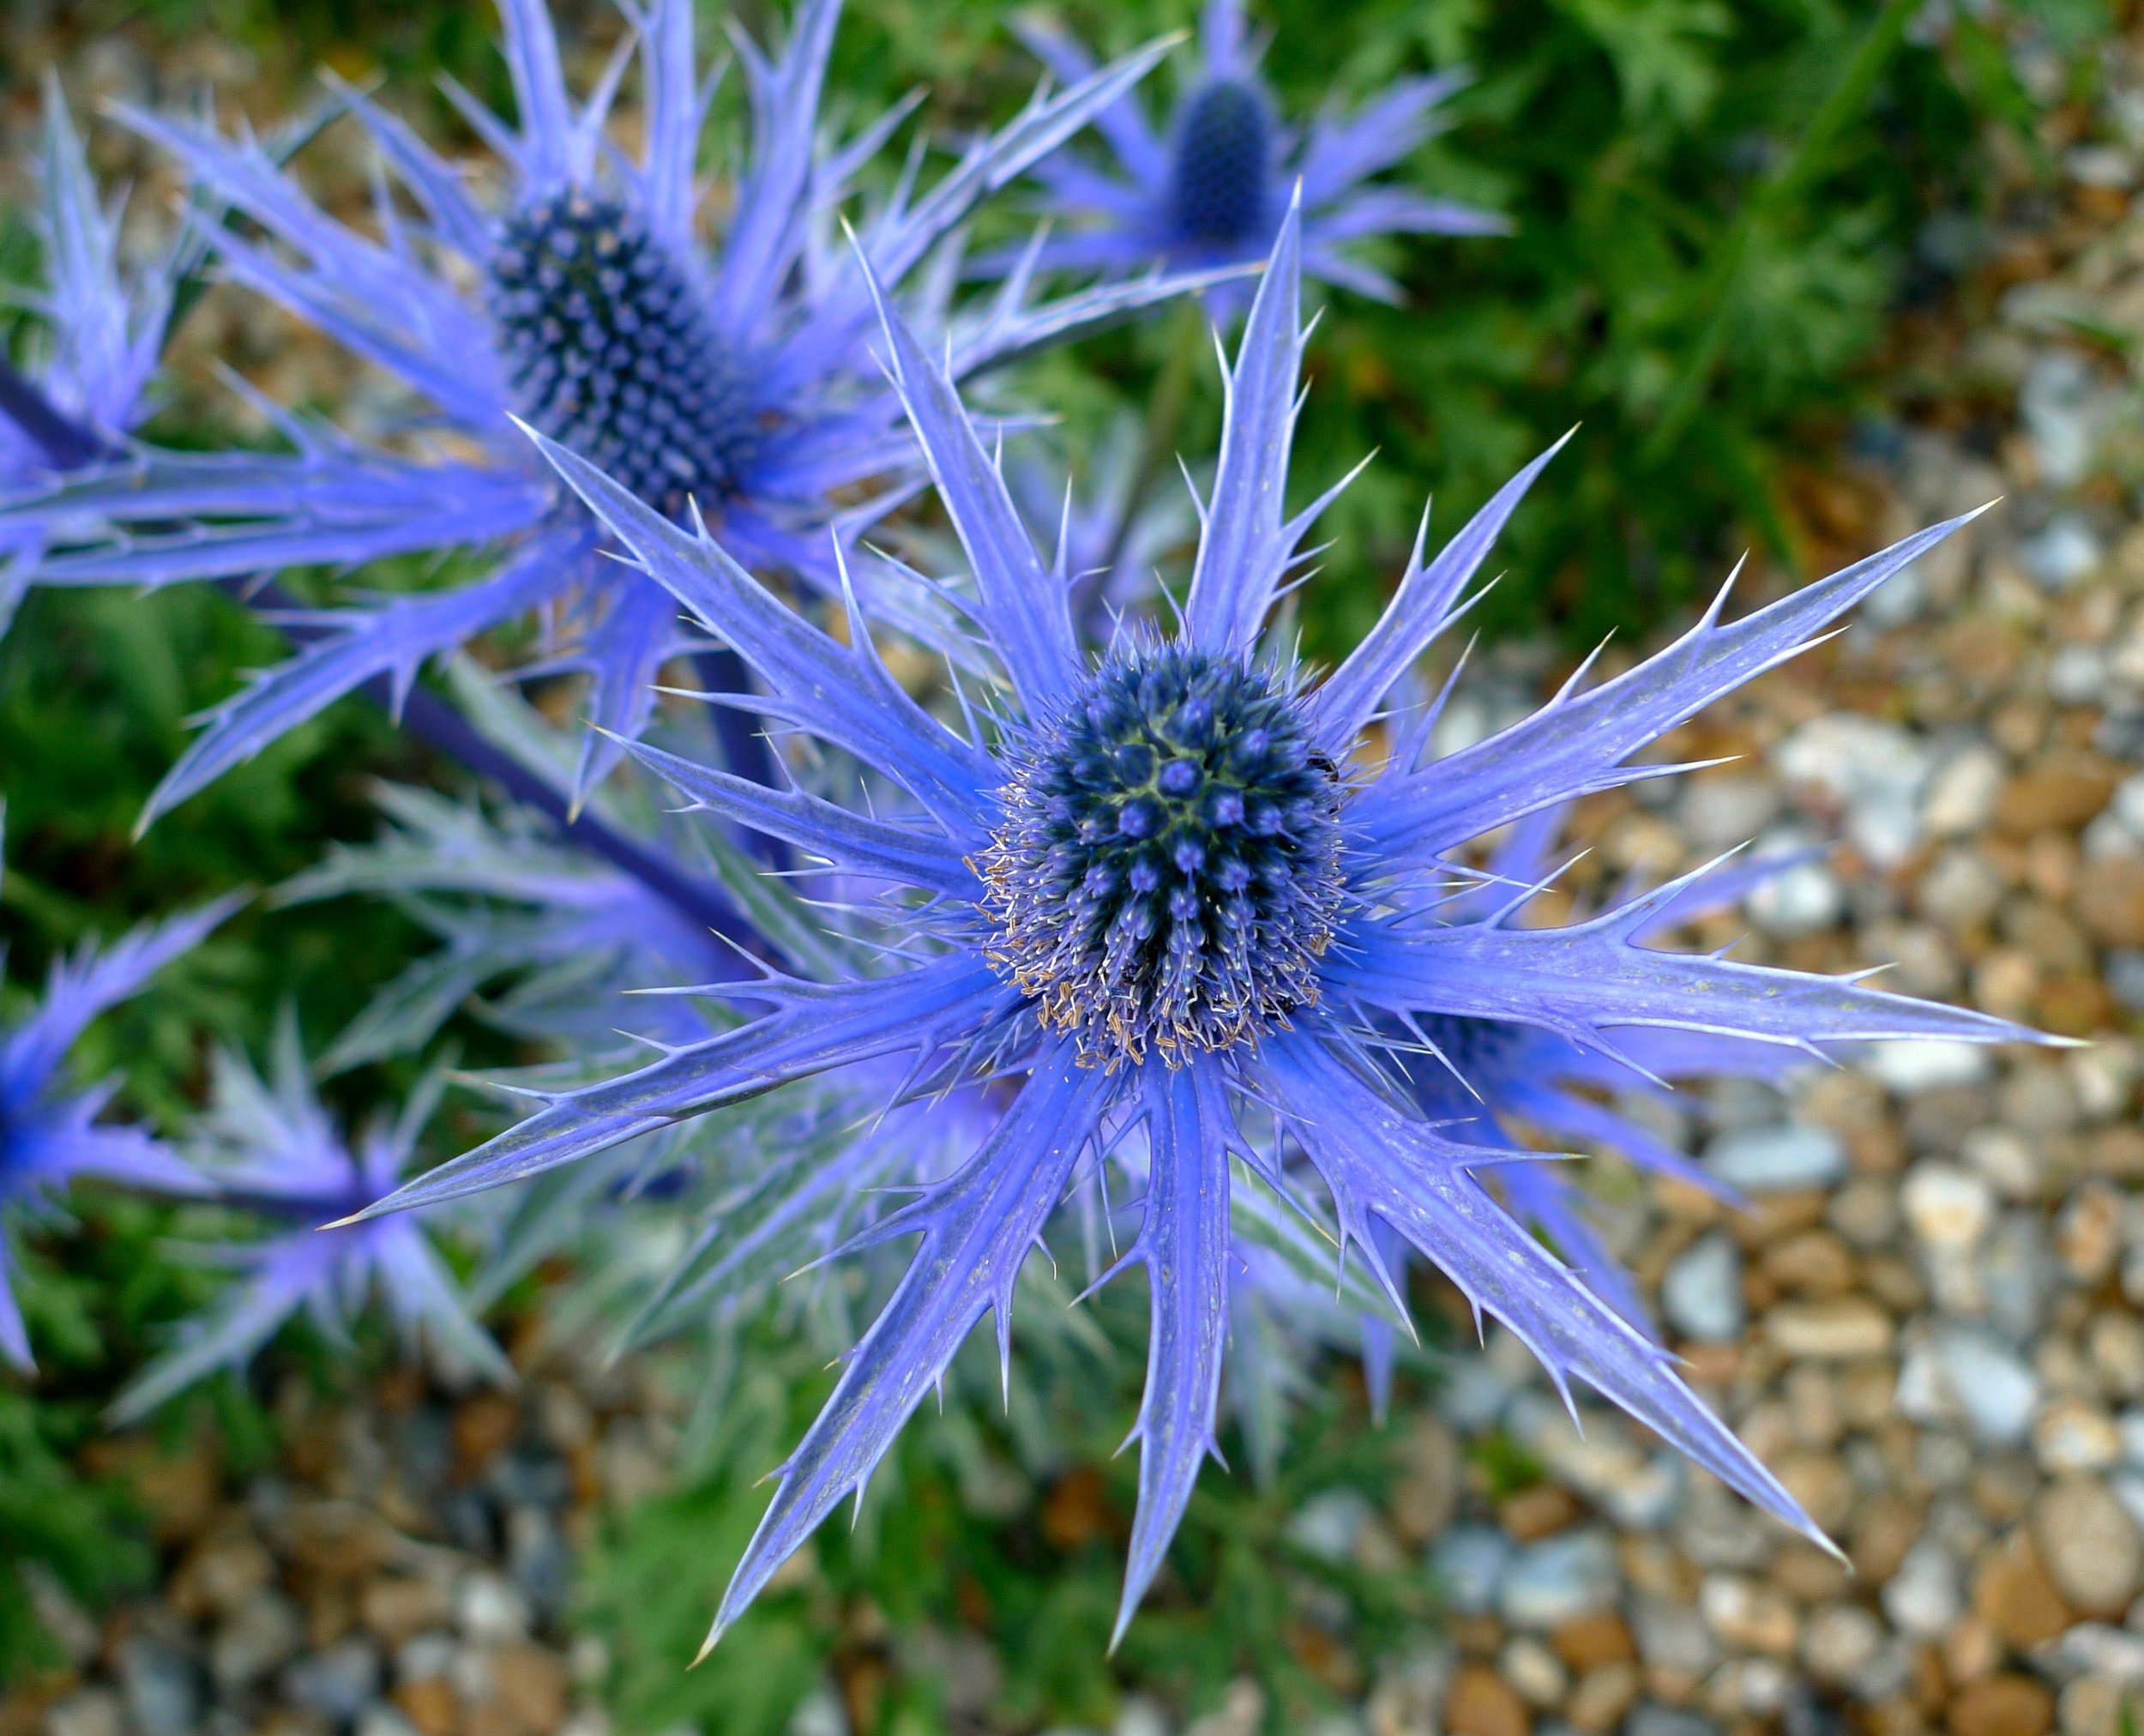 Looking down on the bluest of blue sea holly